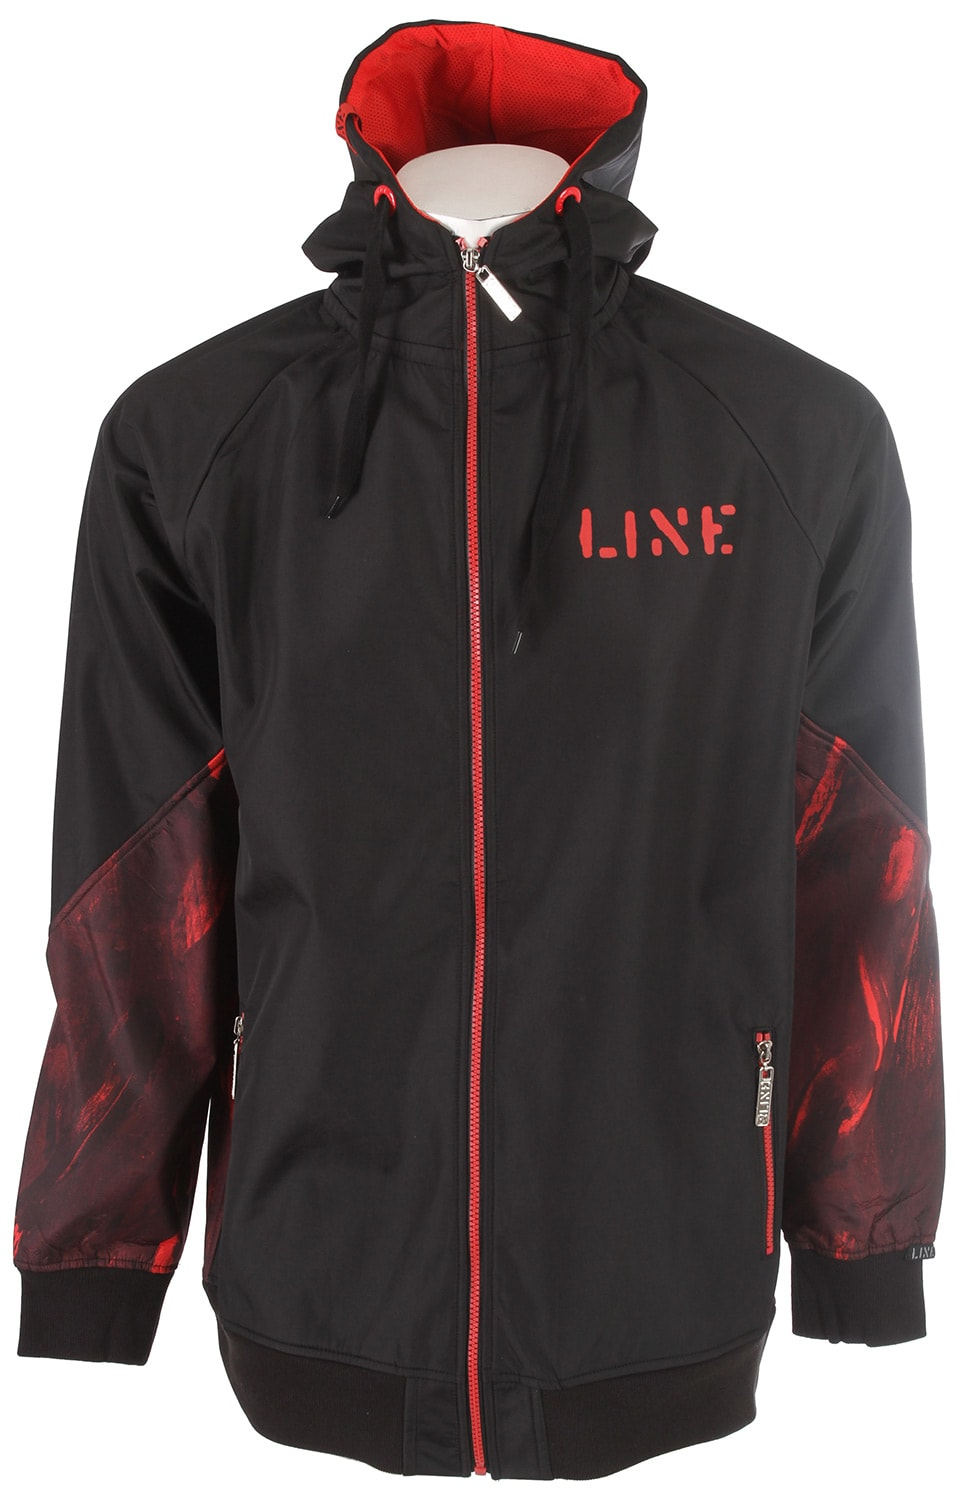 Line Influence Fz Ski Jacket Black